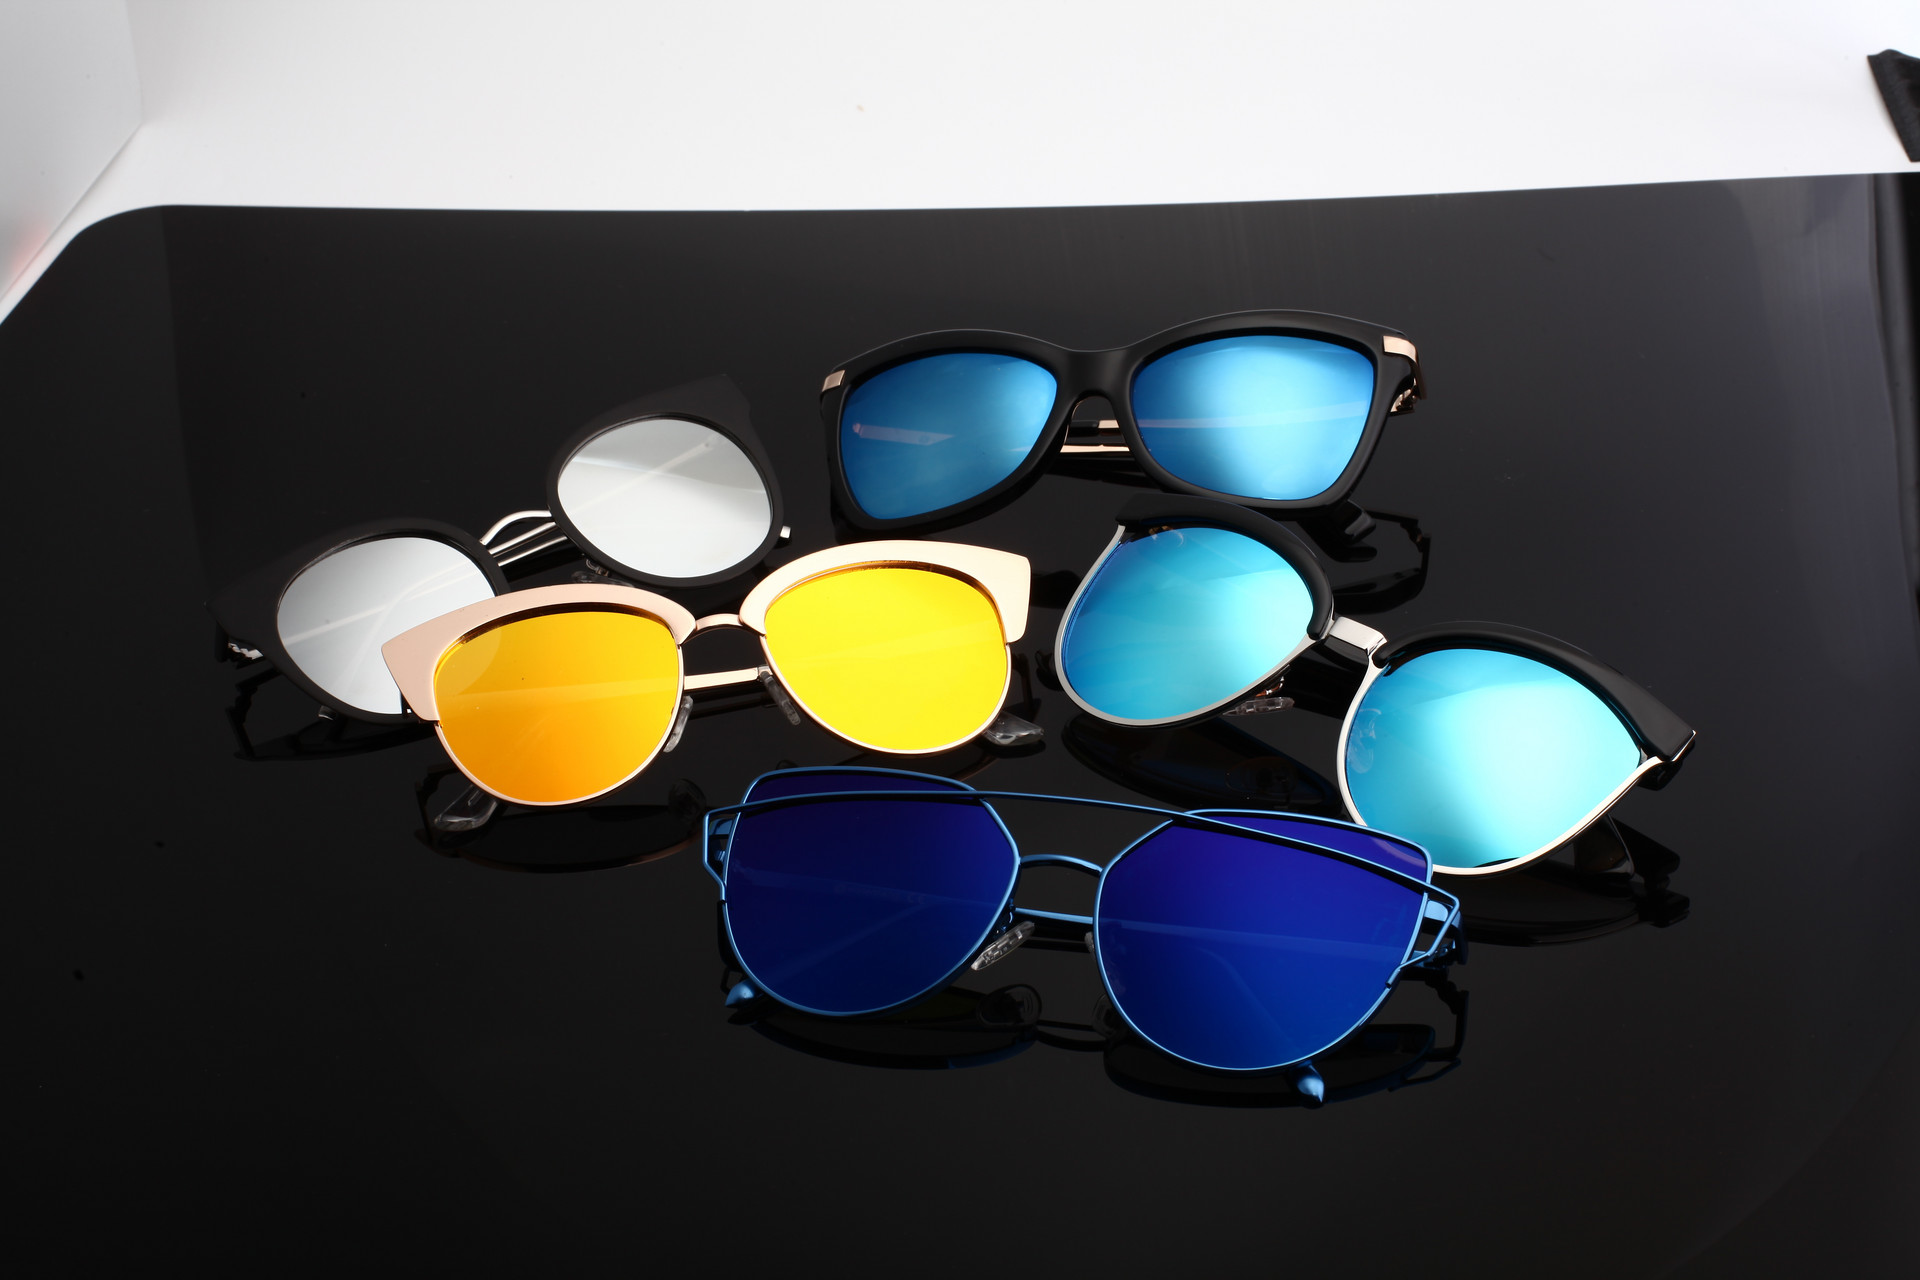 Have you chosen the right color for sunglasses?